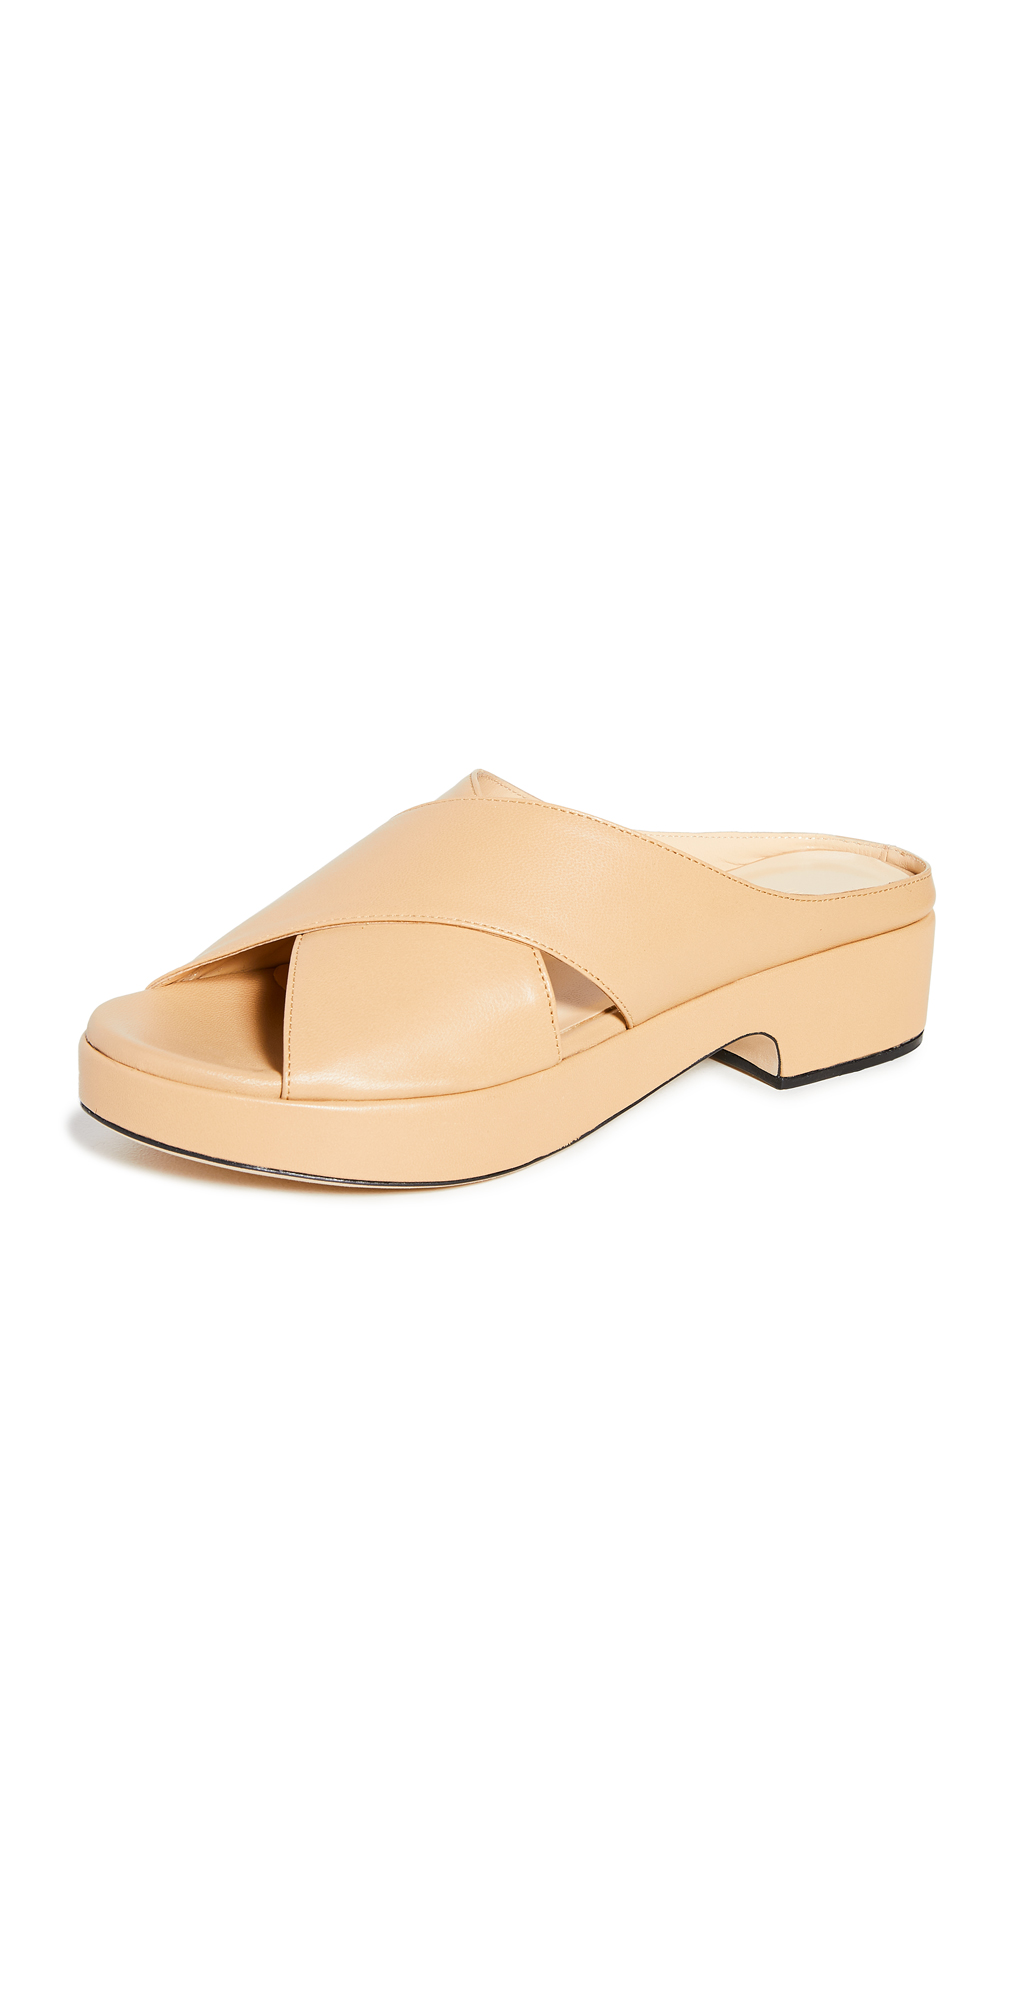 BY FAR Iggy Nude Leather Slides